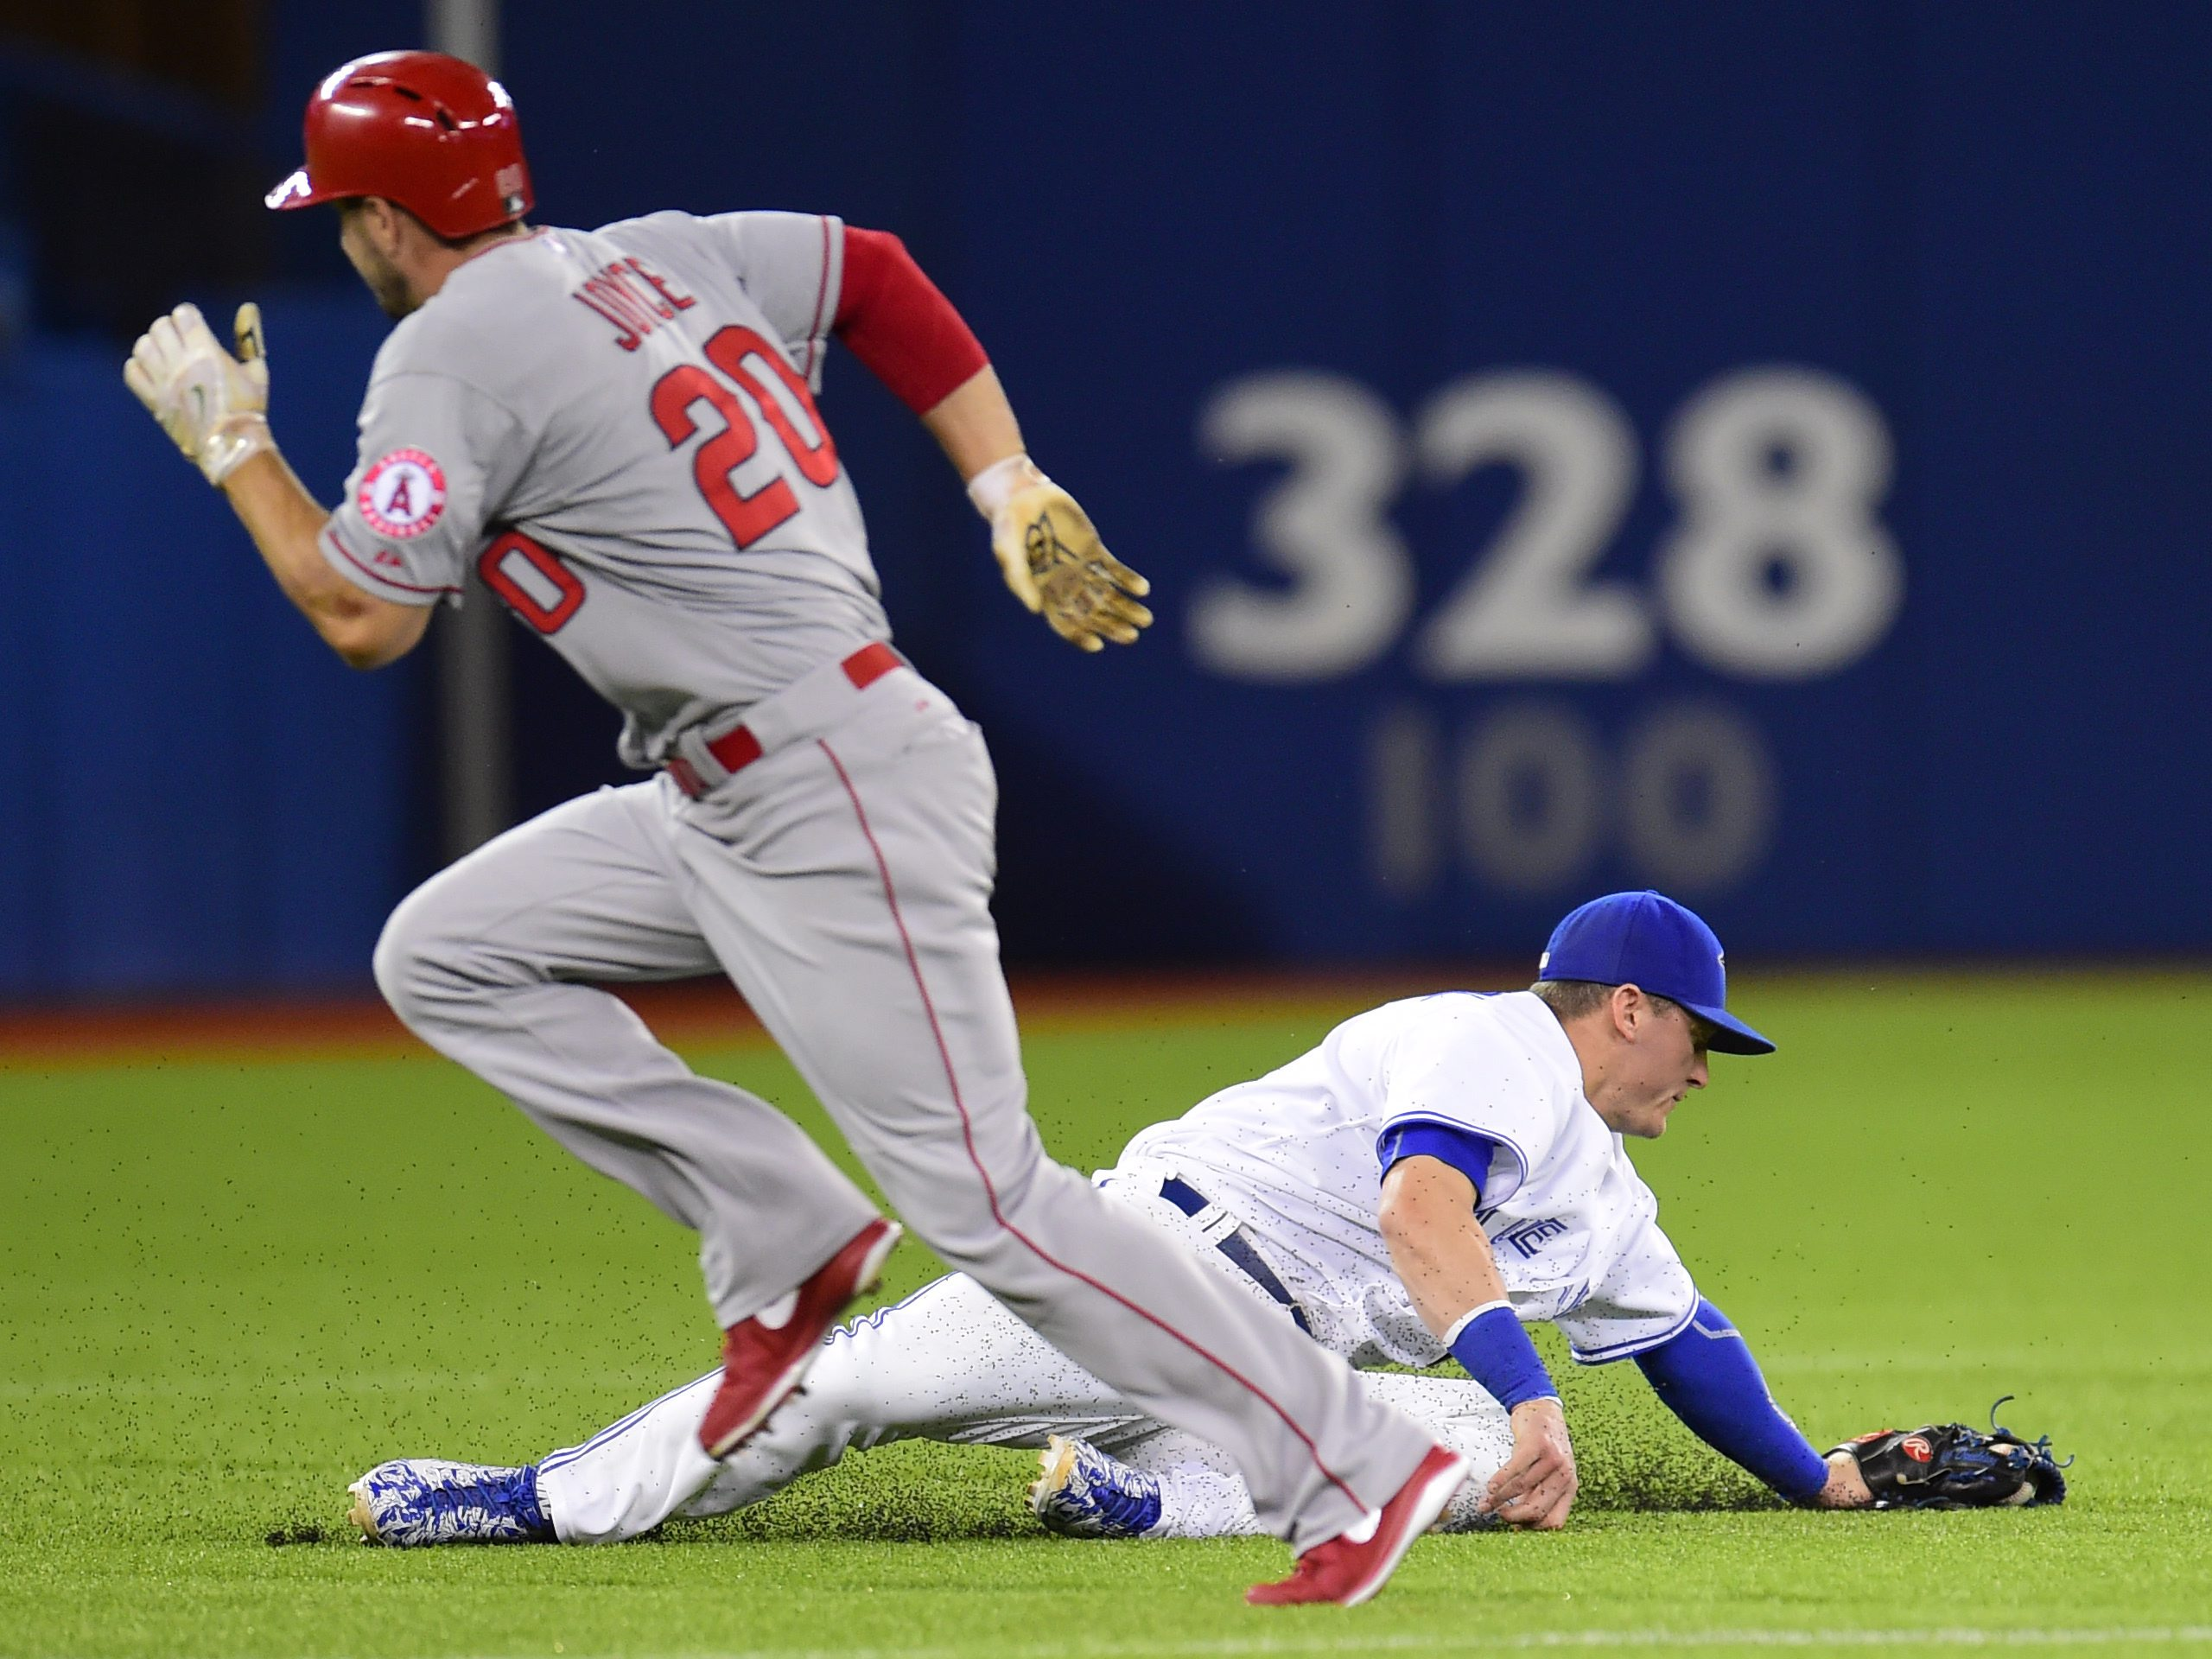 Toronto Blue Jays' Josh Donaldson stops a grounder  as Los Angeles  Angels' Matt Joyce (20) heads to third base during seventh inning American League baseball action in Toronto, Tuesday, May 19, 2015.  Donaldson  made the throw to force out Angels' Chris